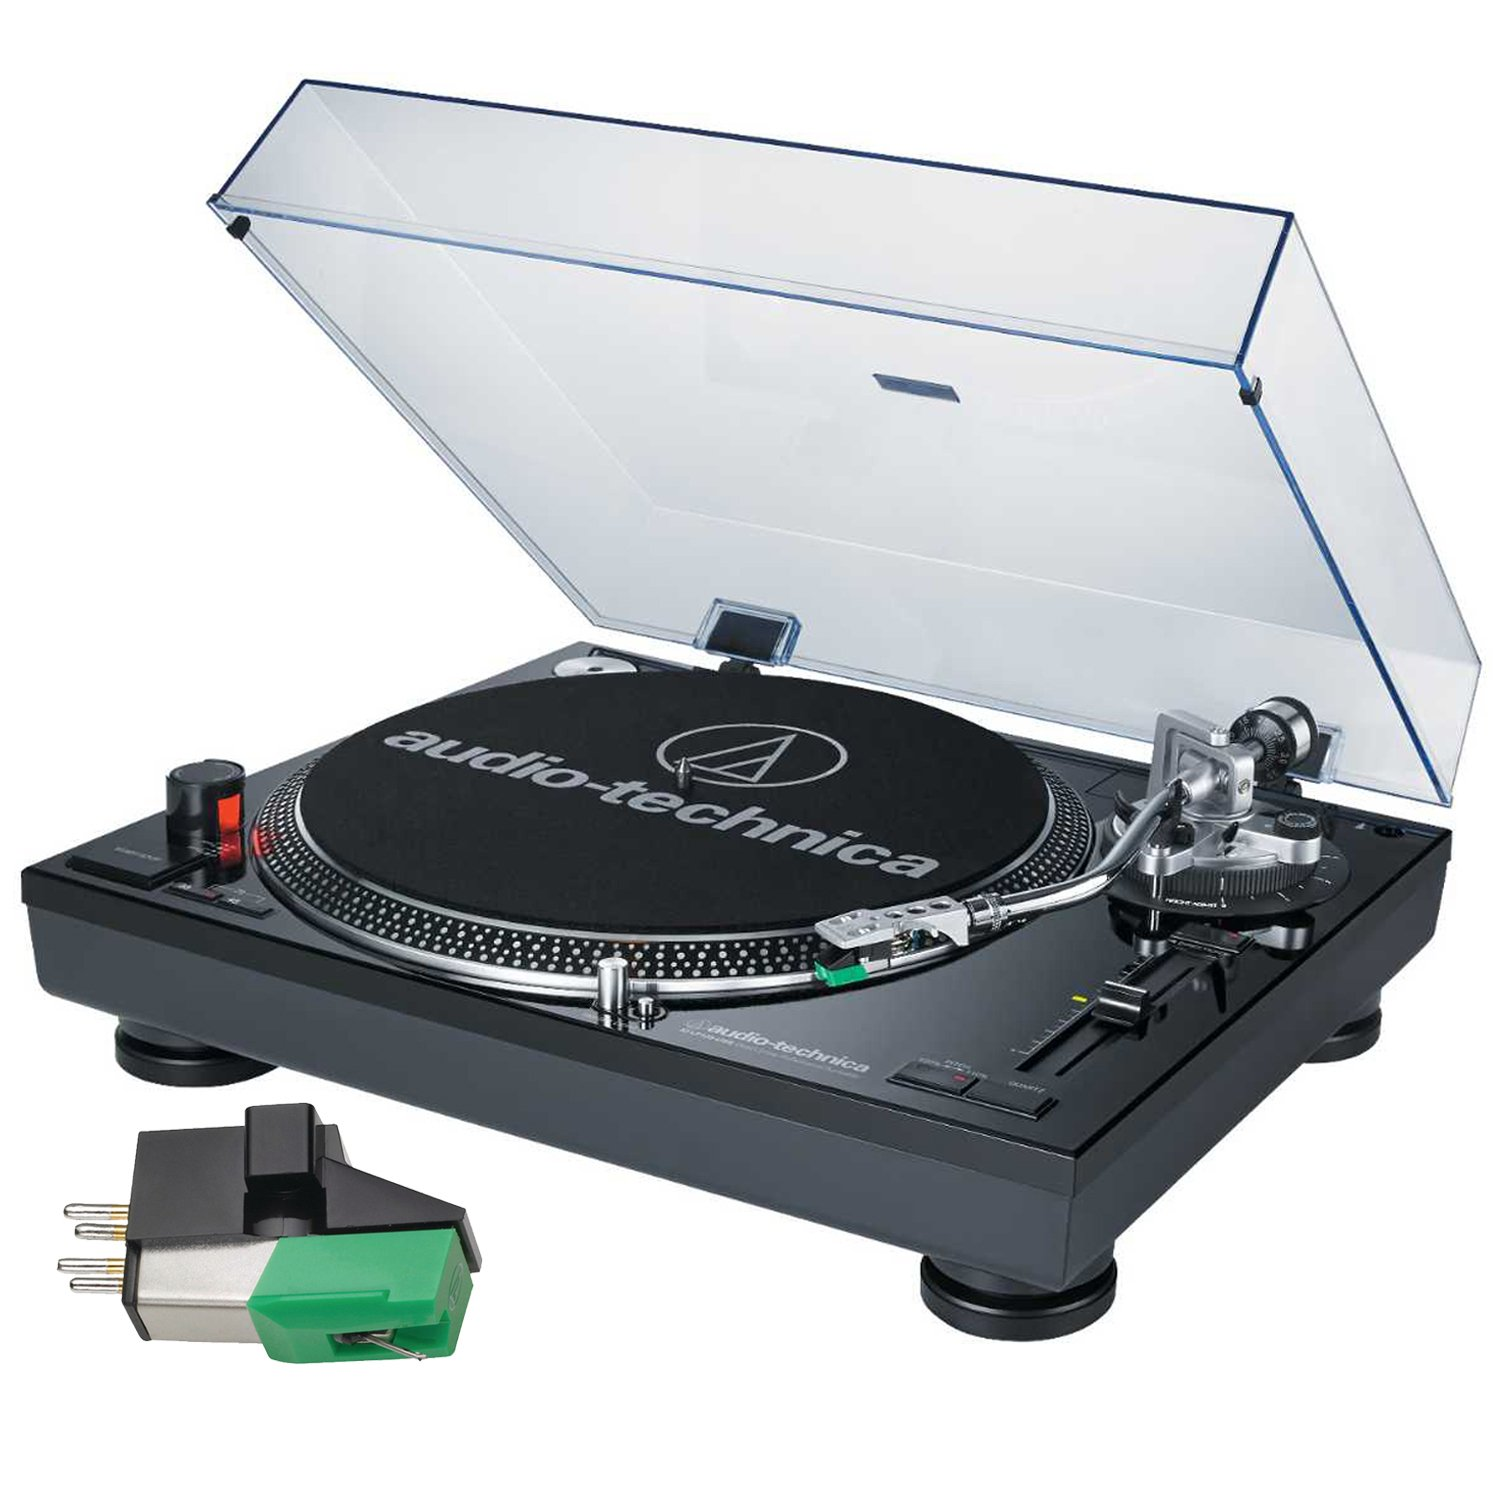 Audio-Technica Professional Turntable Black Friday deal 2019